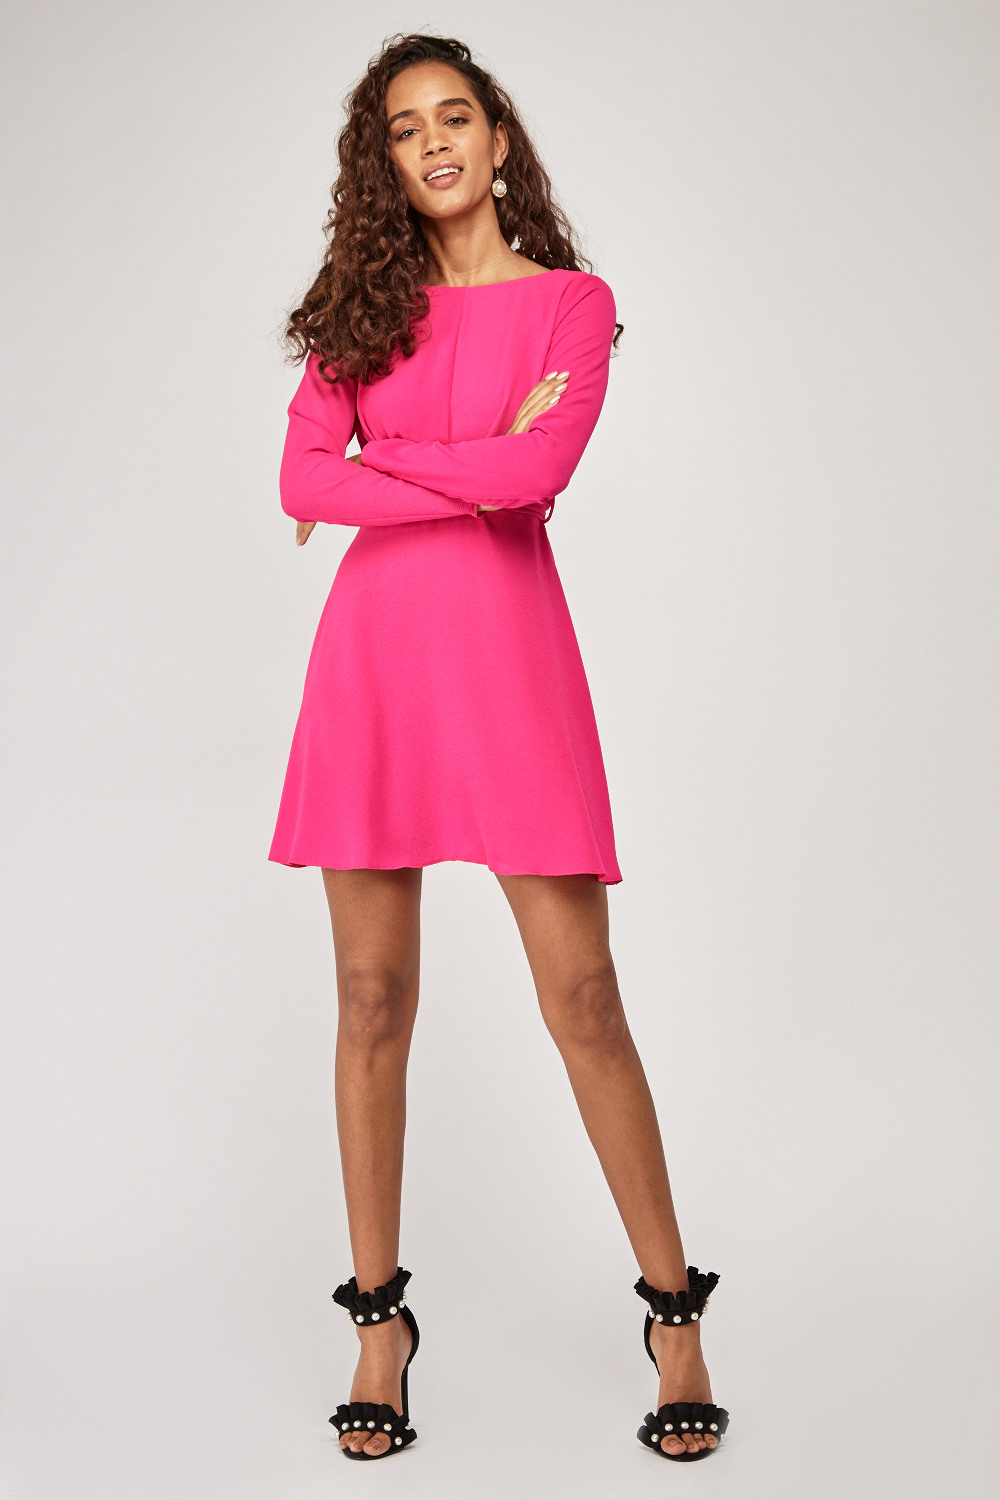 74d55ae608e2 Twisted Tie Up Swing Dress - Hot Pink - Just £5